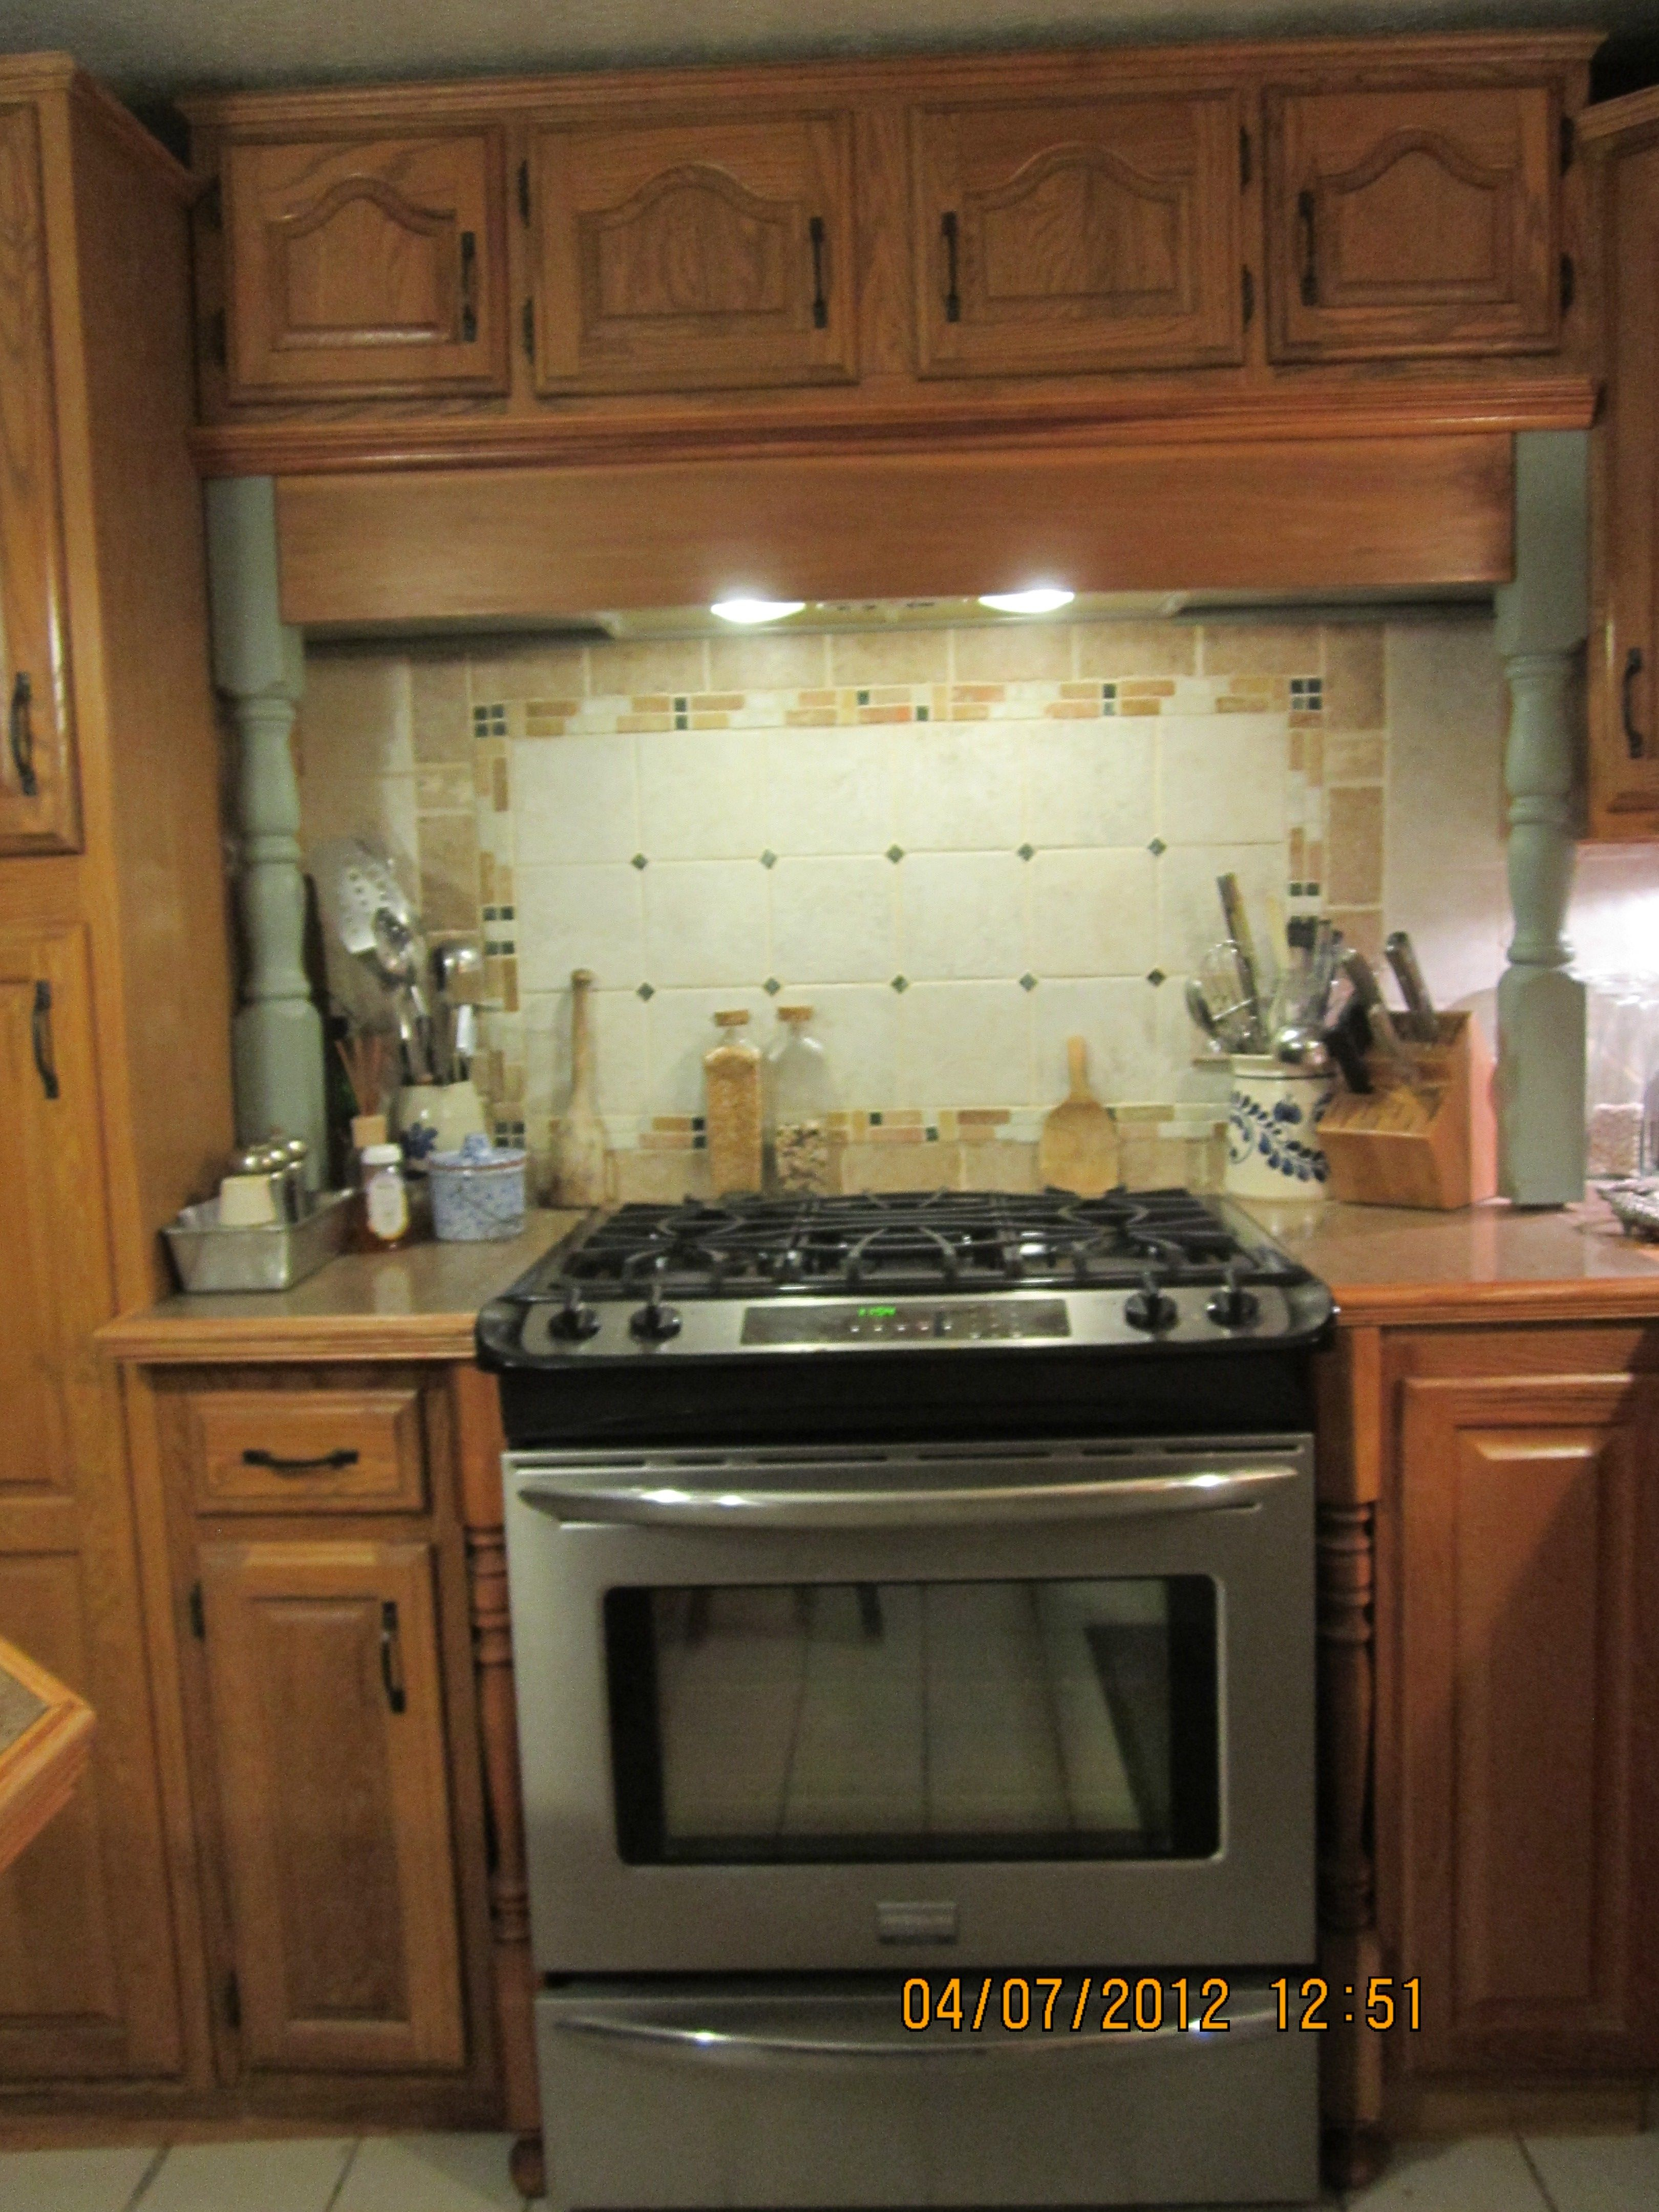 Rearranged cabinets & relocated fridge that used to be here & added a gas line to make this space for my new convection oven gas stove.